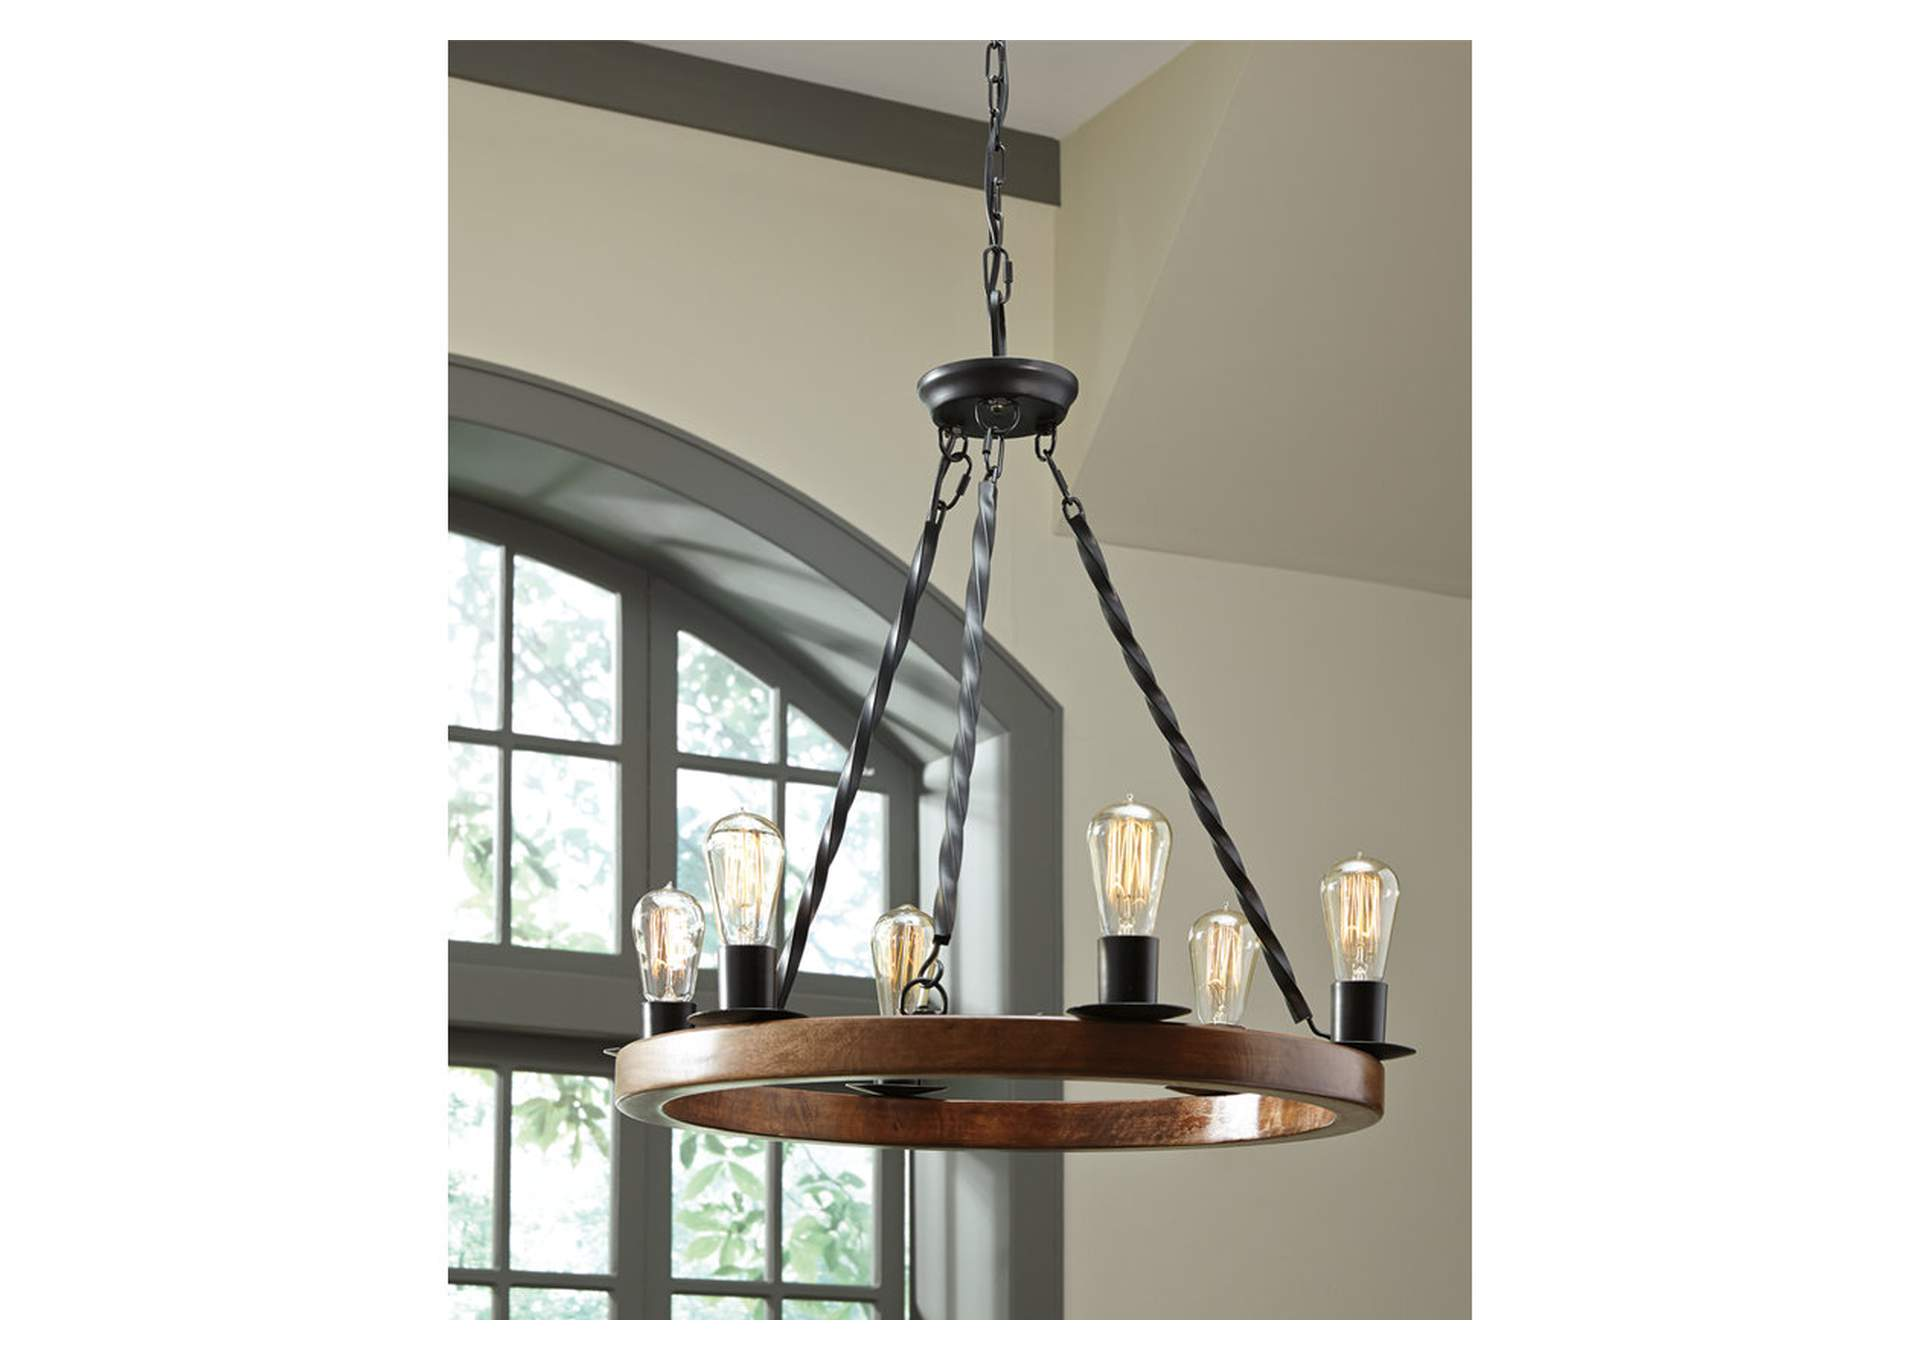 Plato Brown/Black Wood Pendant Light,Direct To Consumer Express